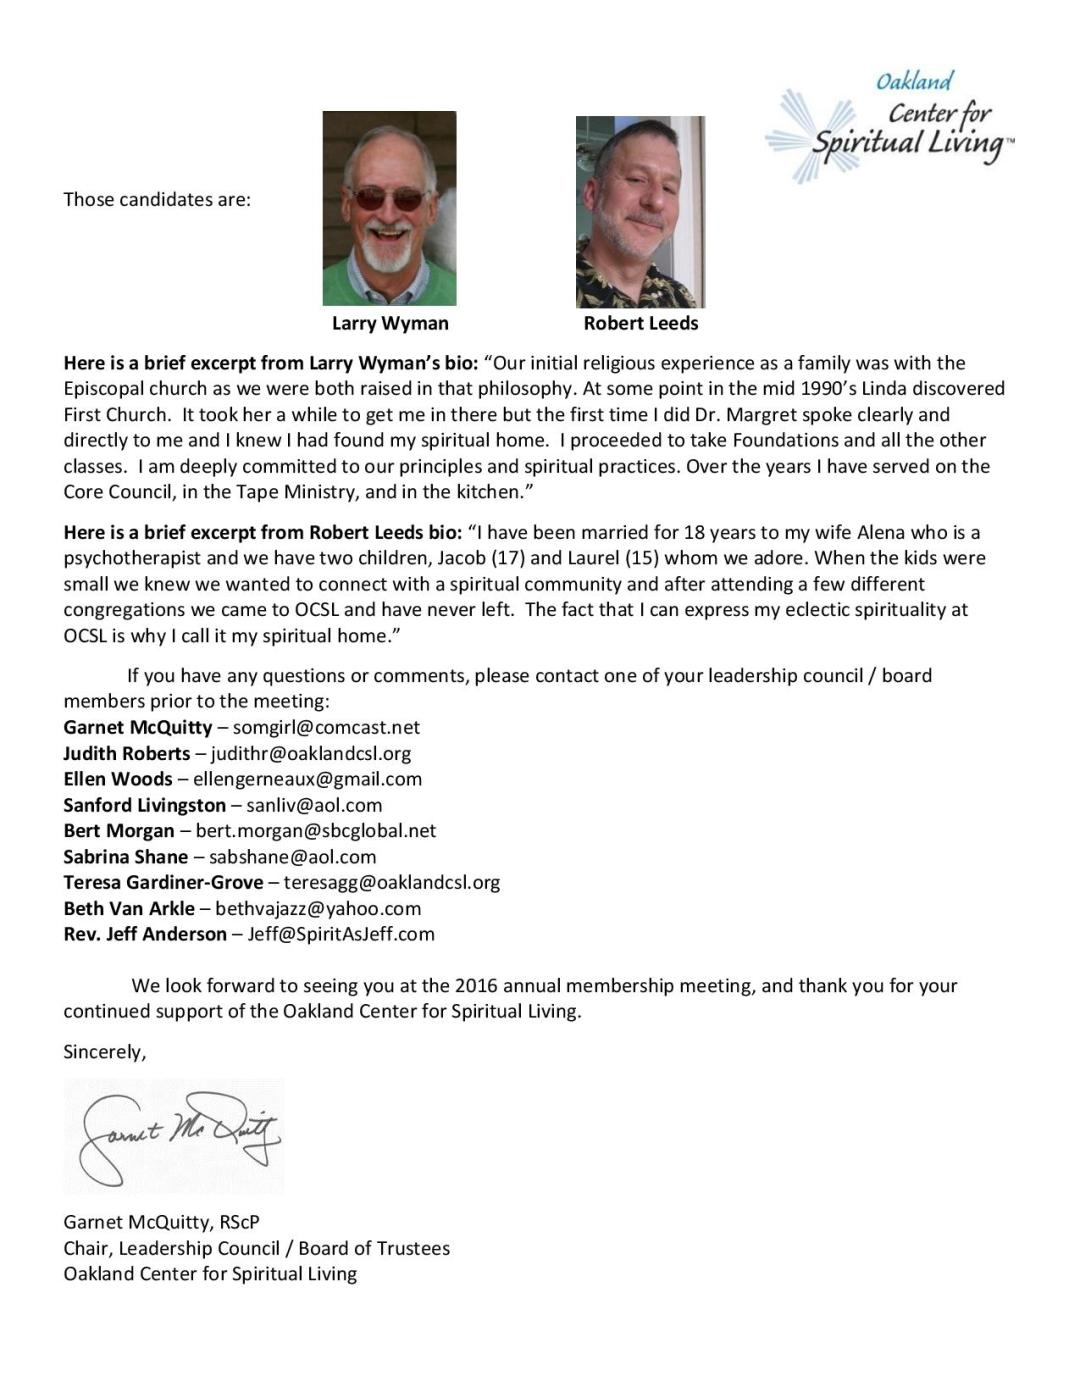 Annual Meeting letter 2016-page-002